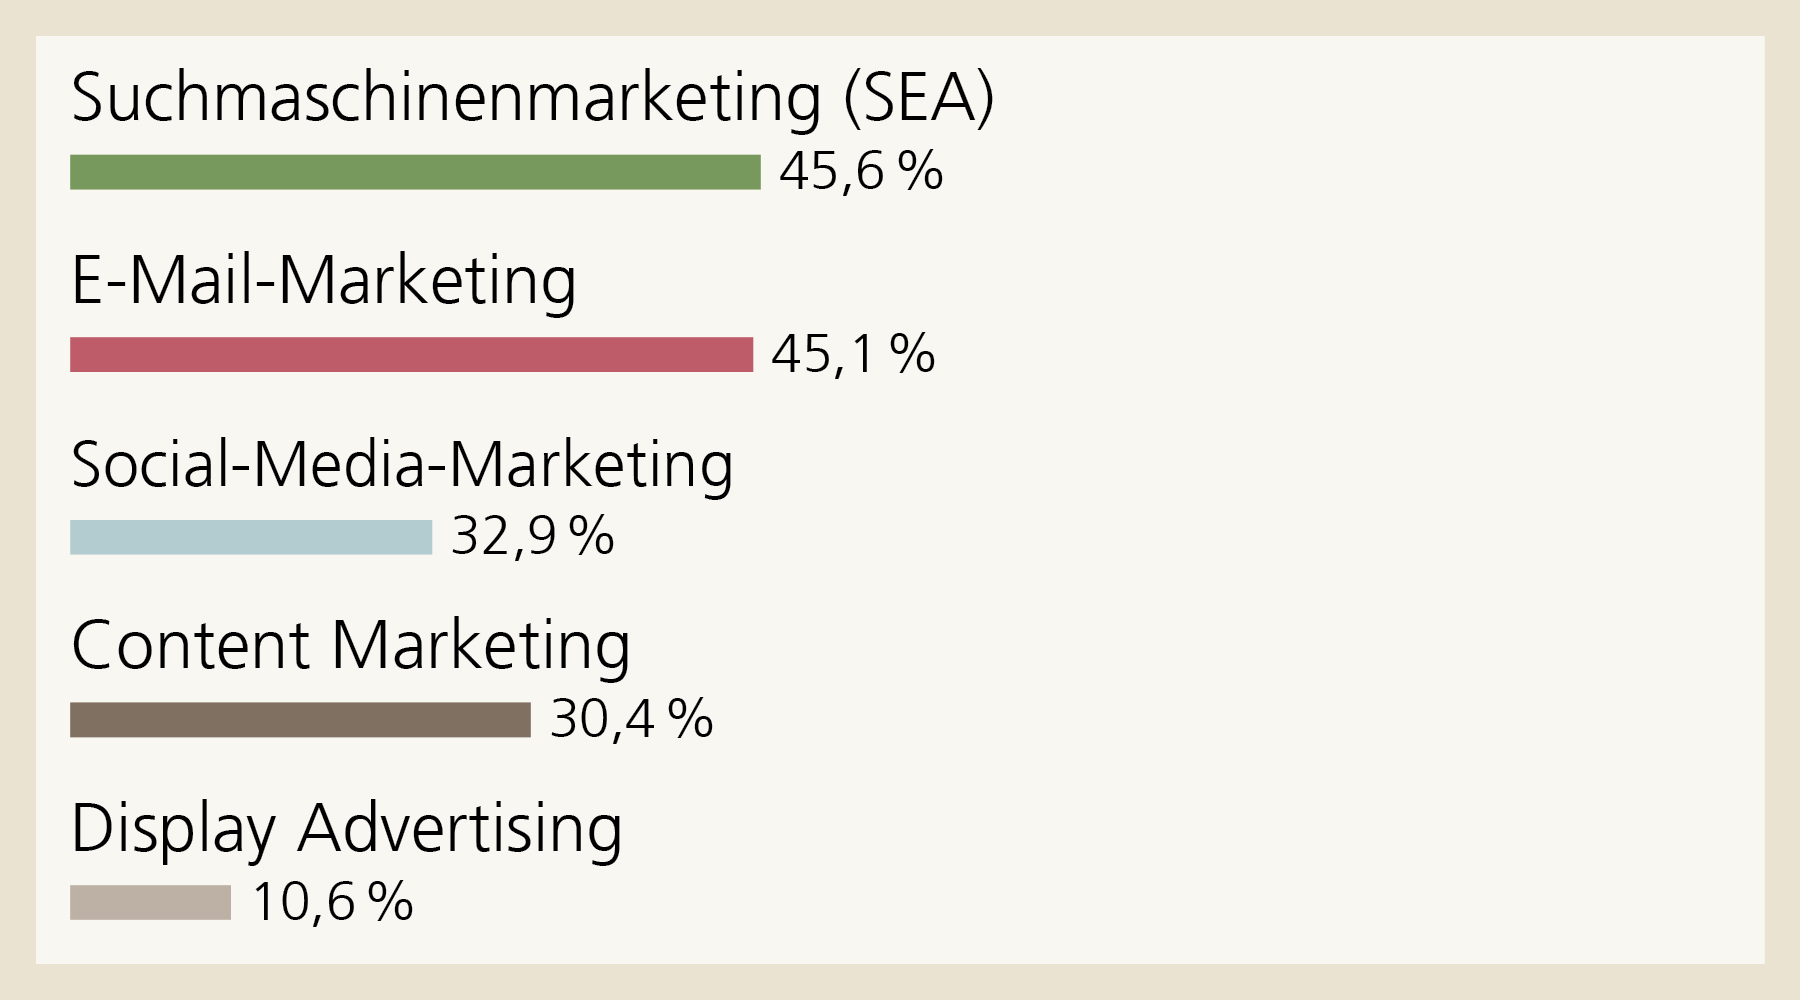 Digital kommunizieren: Rund die Hälfte der befragten Kleinunternehmen stufen das Suchmaschinen- und E-Mail-Marketing als hoch relevant ein. Beim E-Mail-Marketing sind es 45,1 %, bei Social-Media-Marketing  32,9 %, beim Content Marketing  30,4 % und beim Display Advertising 10,6 %.